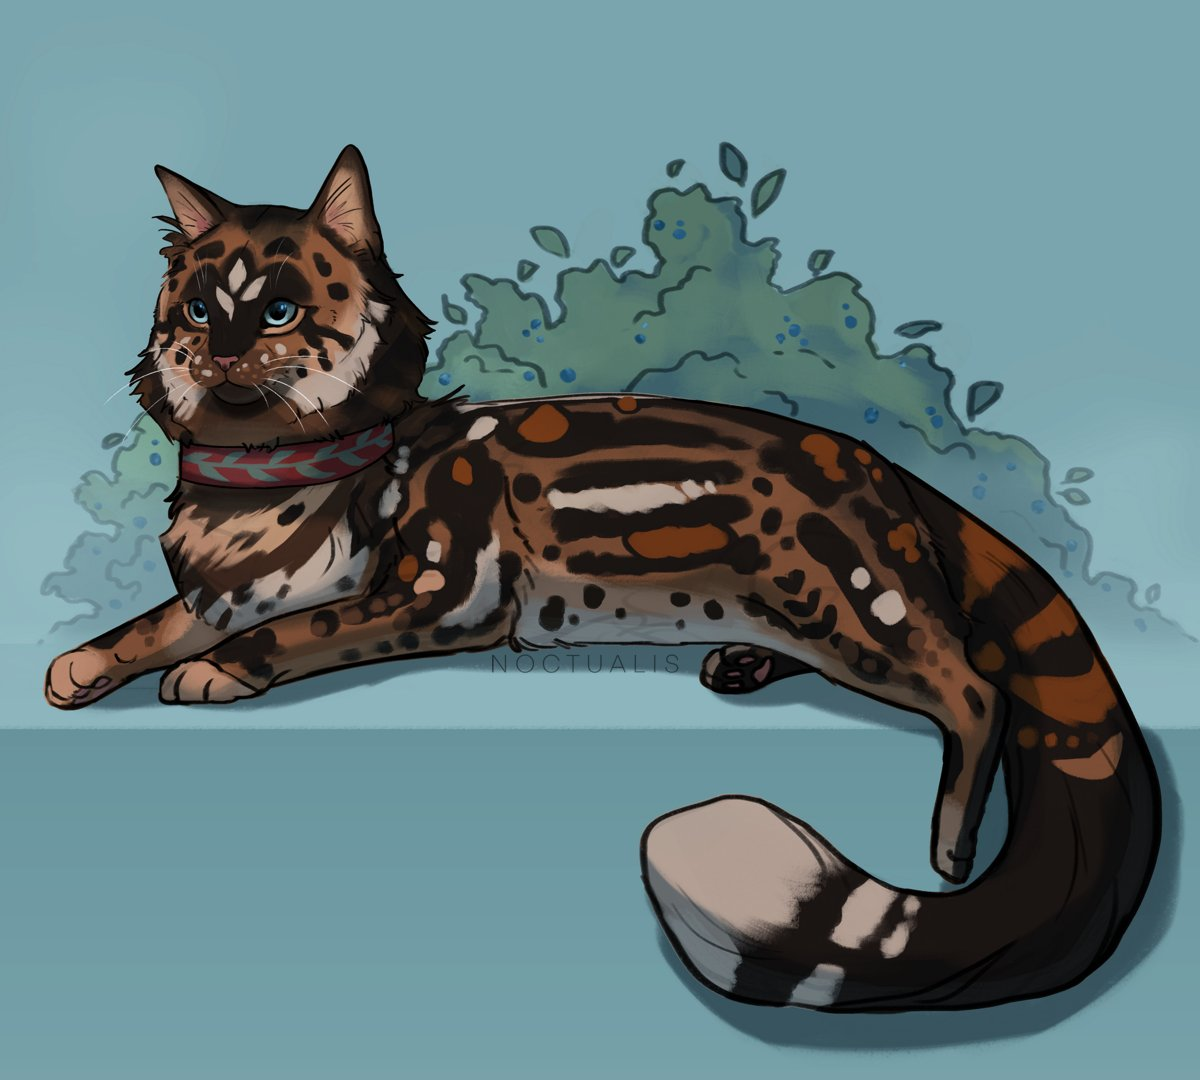 Donation commission for kitaki on deviantart! That's the last commission I'll be doing for now! Thanks for all the donations to the cause. #tiltify #catart #warriorcats #krita https://t.co/iYtyHHbEHP